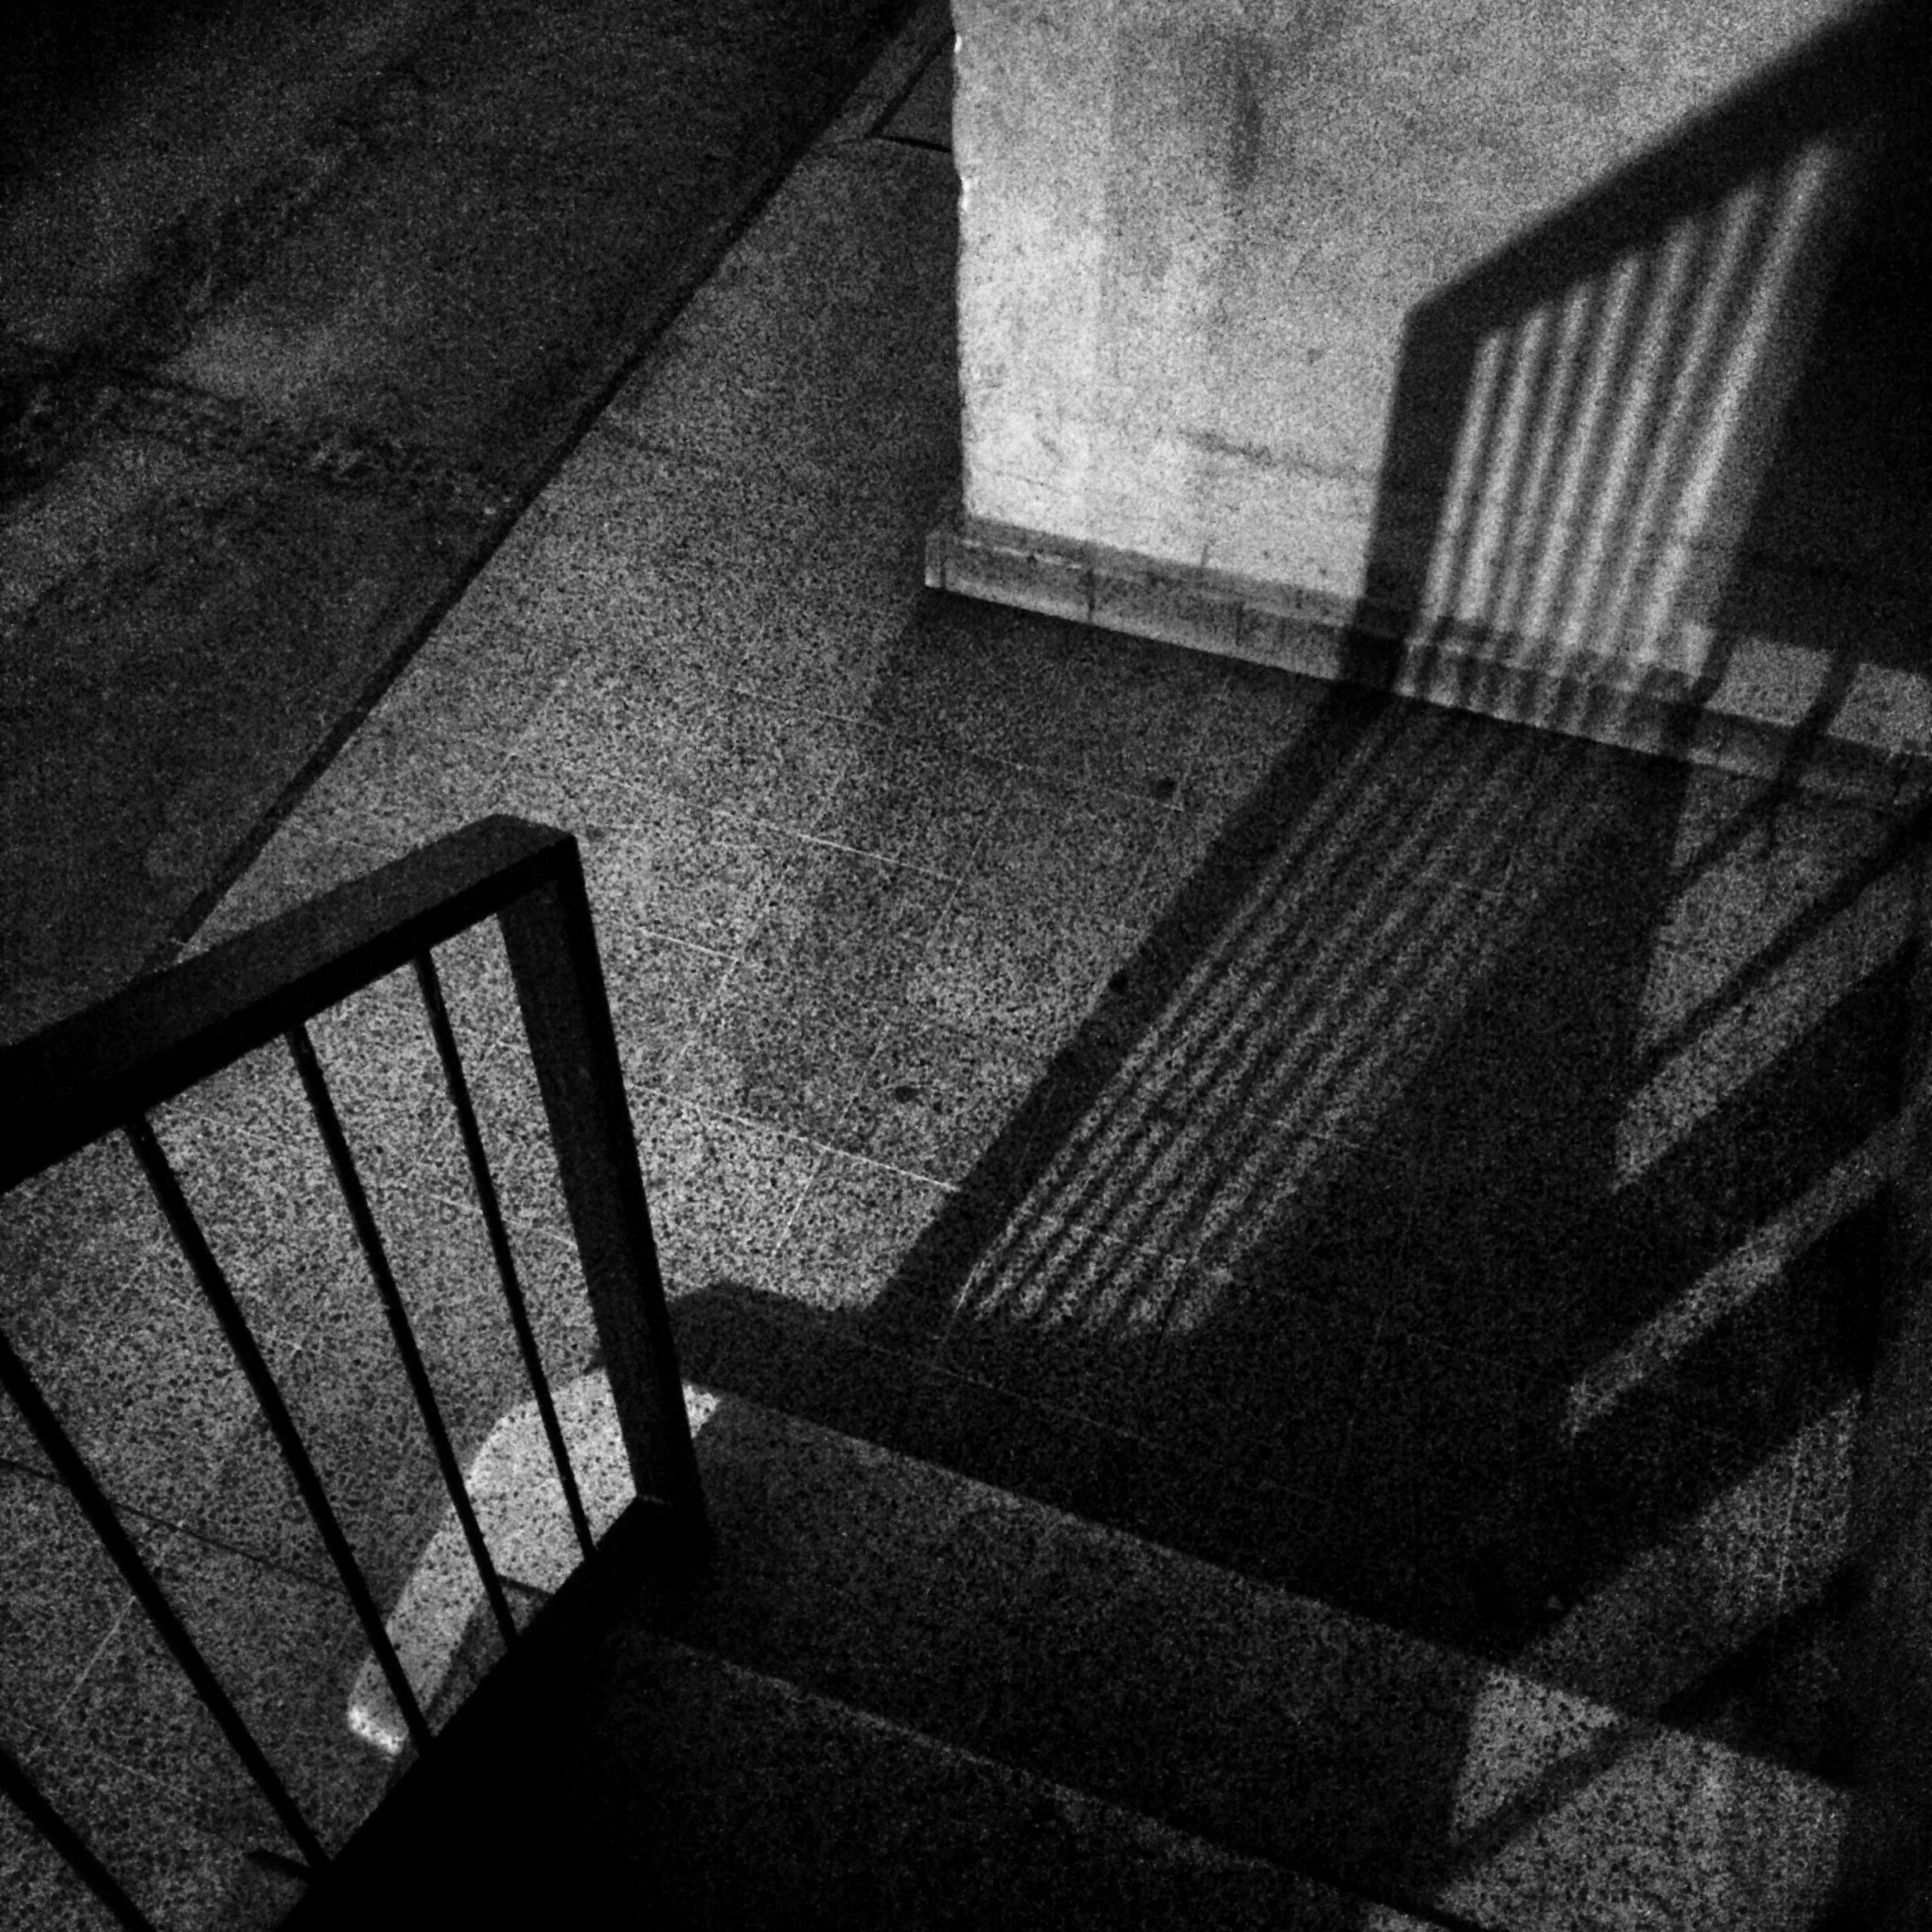 indoors, shadow, sunlight, tiled floor, high angle view, architecture, built structure, flooring, pattern, steps, wall - building feature, staircase, steps and staircases, tile, no people, day, empty, absence, paving stone, building exterior